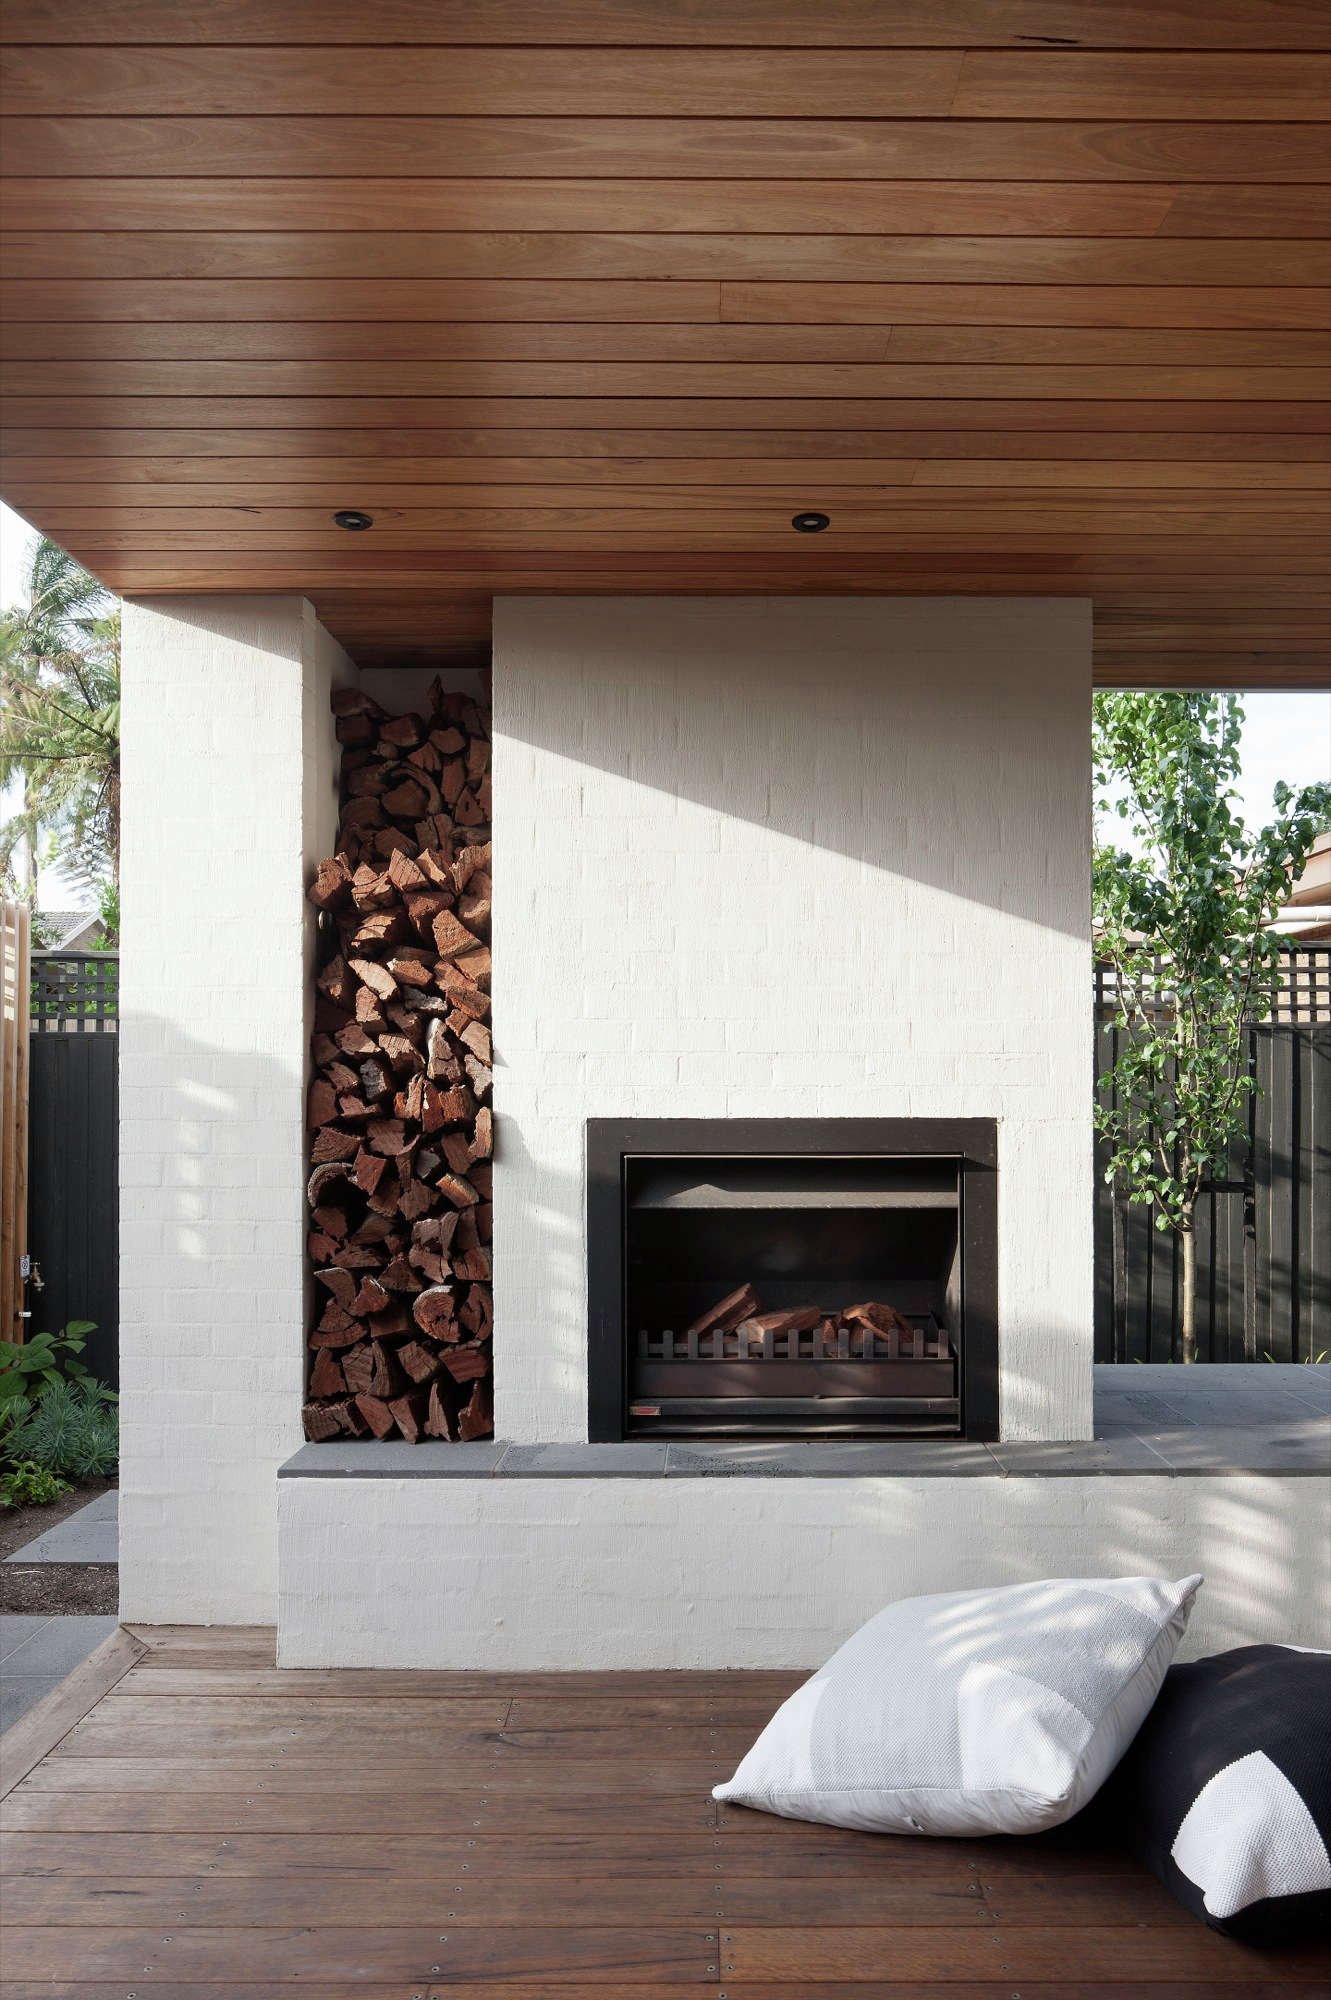 During a remodel to a 60s-era house in Melbourne suburb of Caulfield, Australia the homeowners added an open-air living room with a fireplace. Photograph by Shannon McGrath via Bower Architecture and Arch Daily.